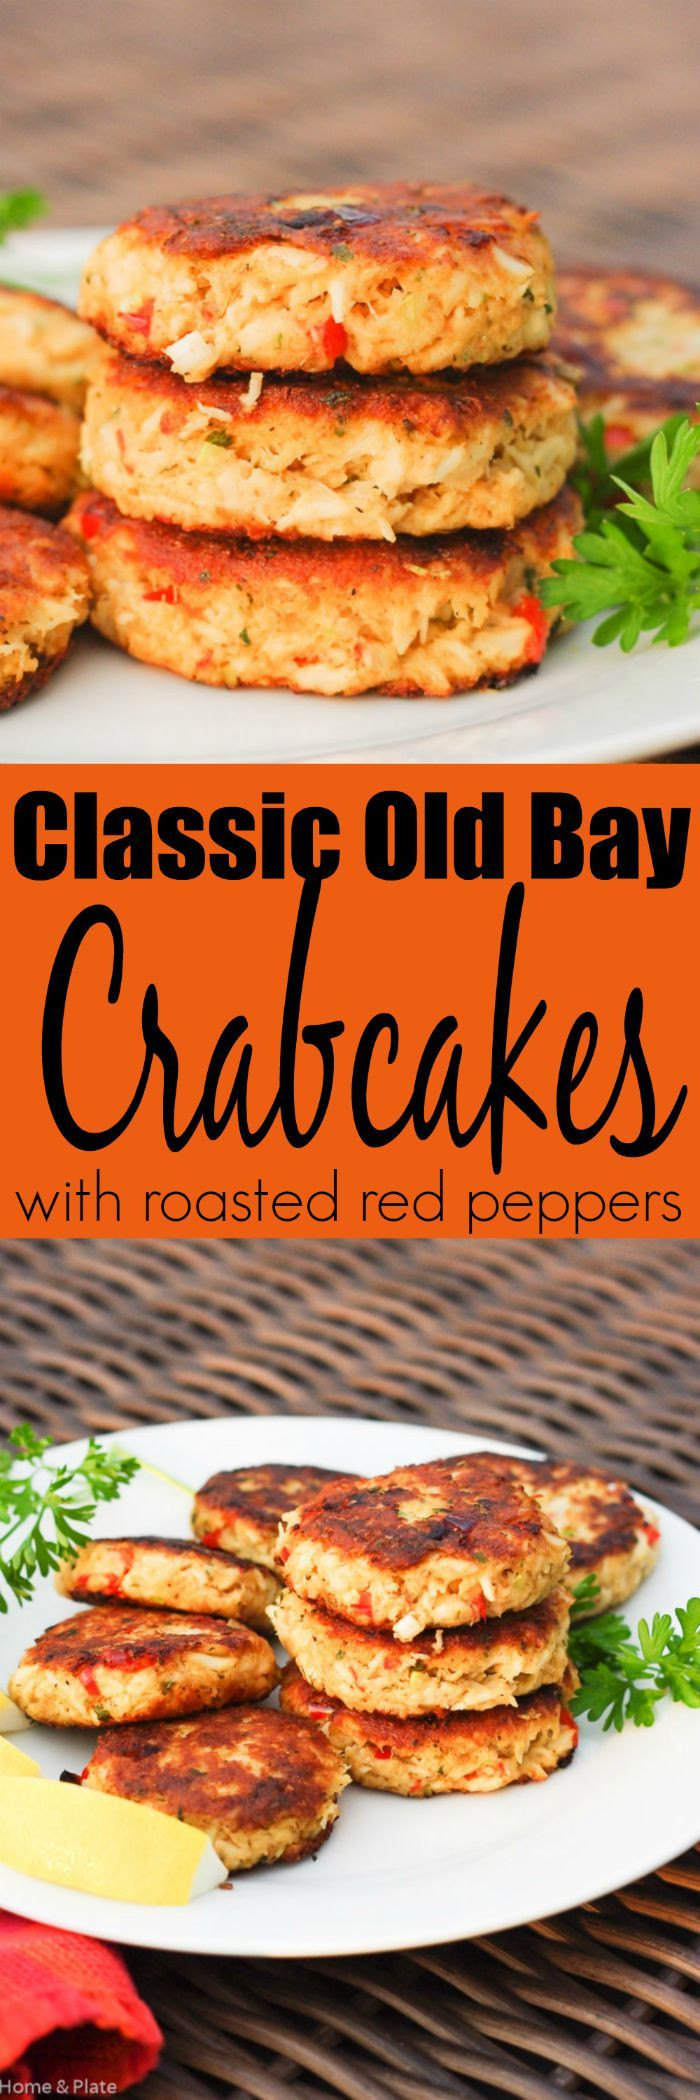 Old Bay Crab Cake Recipe  Classic Old Bay Crab Cakes with Roasted Red Peppers